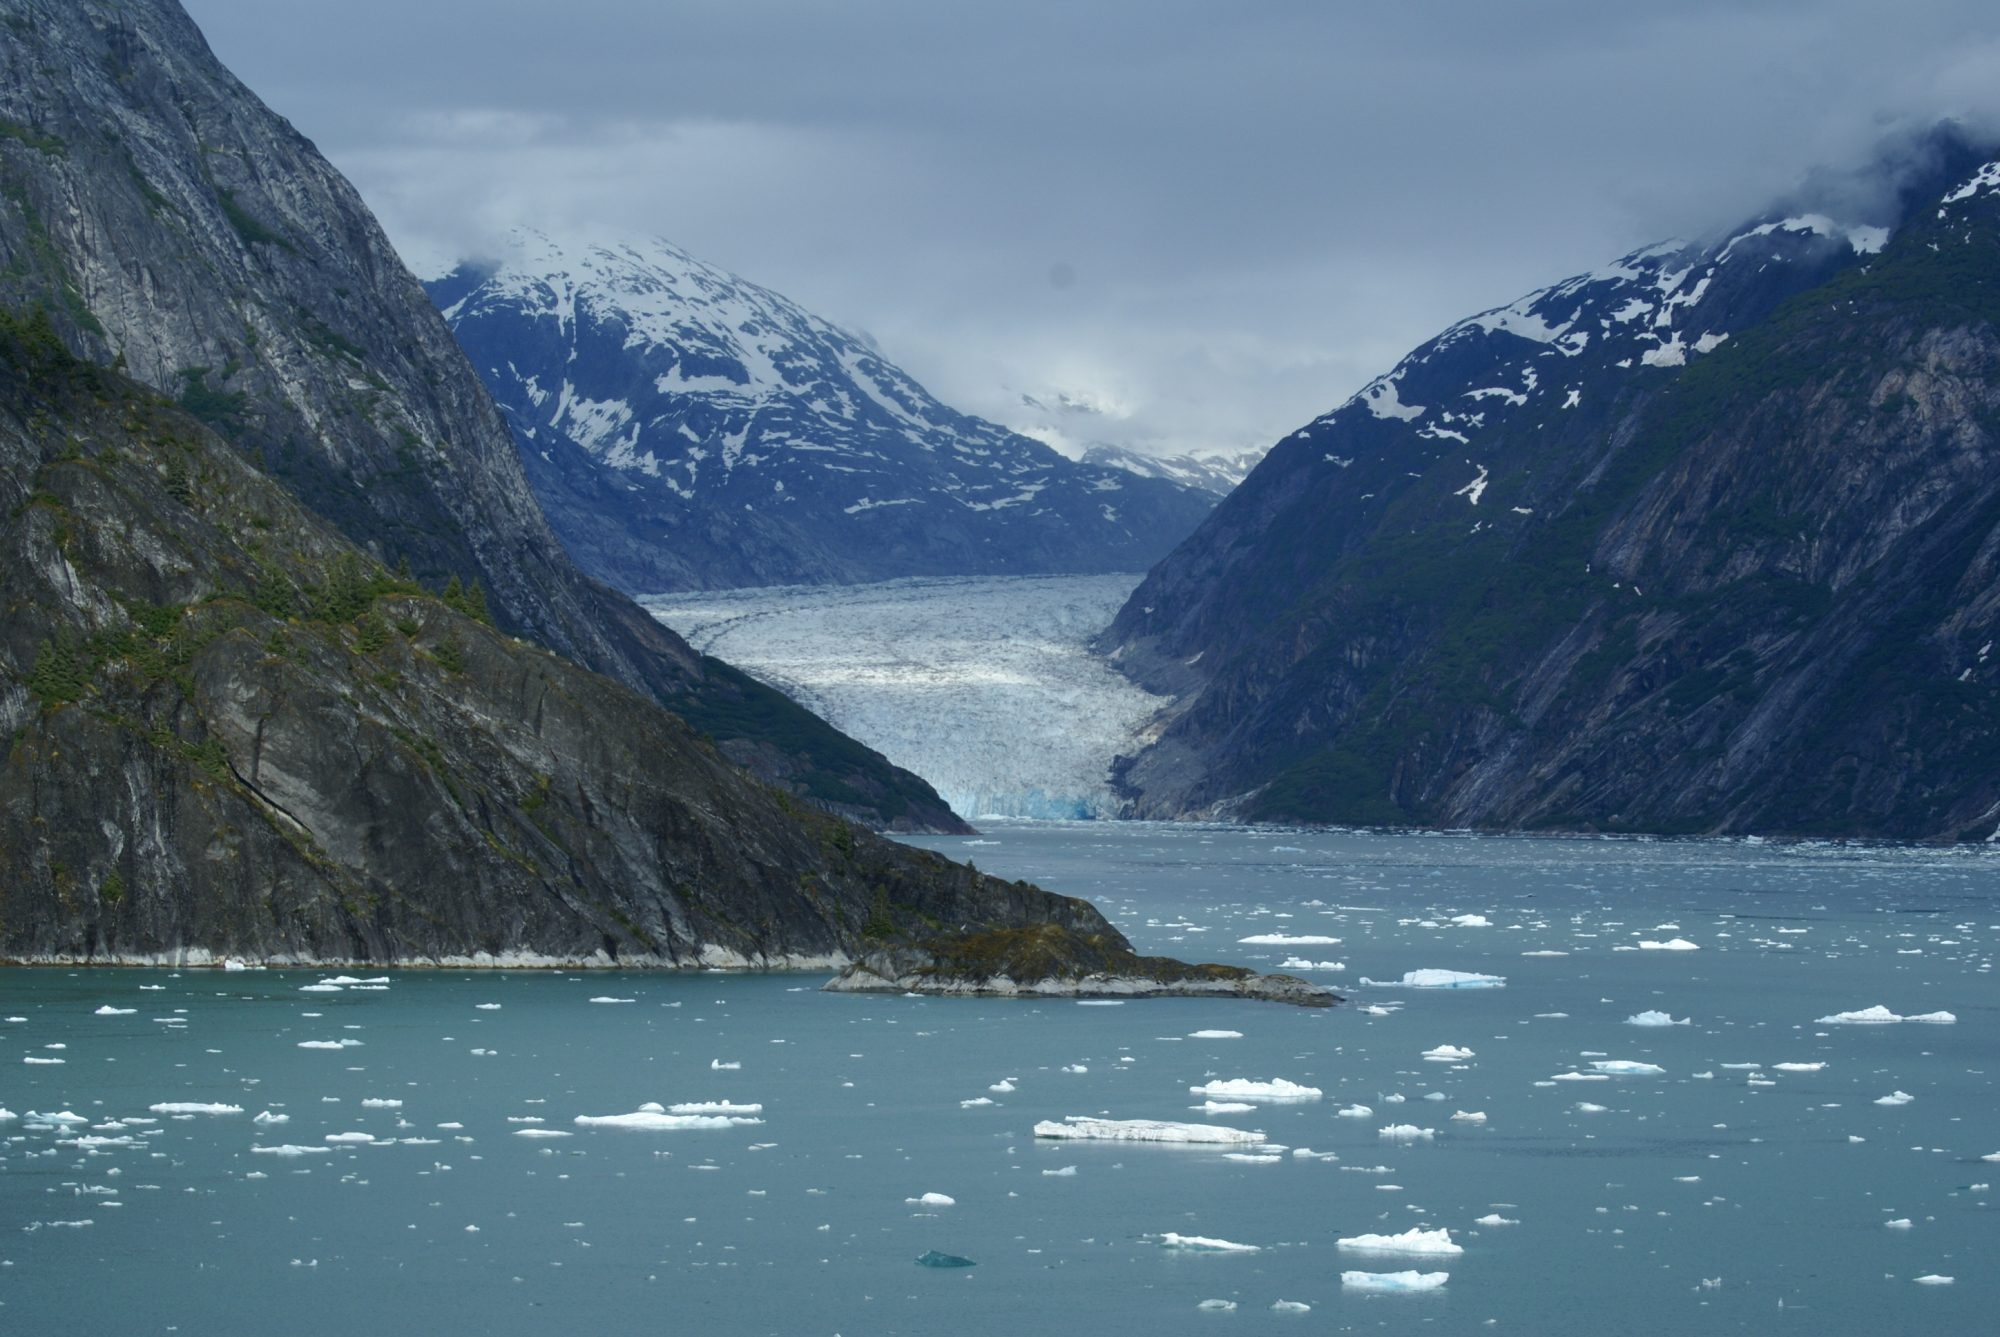 Fjords are partially submerged steep-sided valleys carved out by glacial action (Source: Richard Martin/Creative Commons).